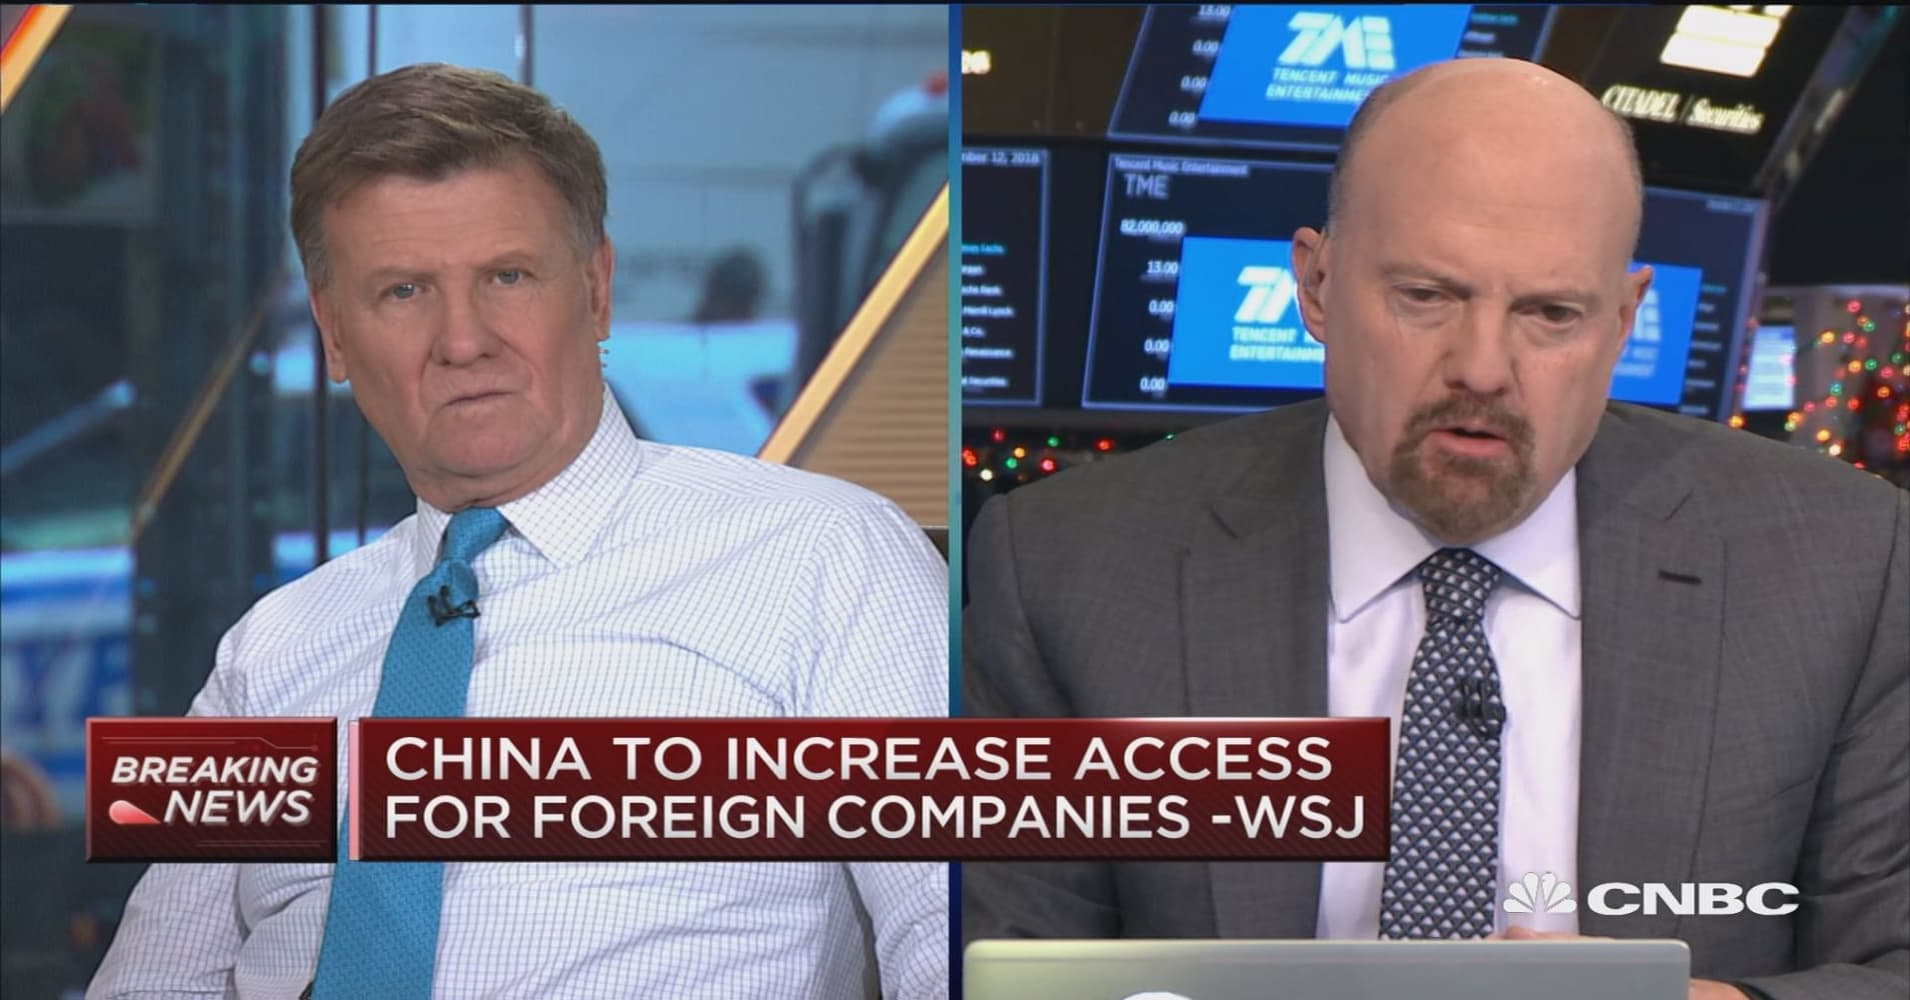 Cramer: China may be recognizing that revealing its 'world domination' plan was a bad idea